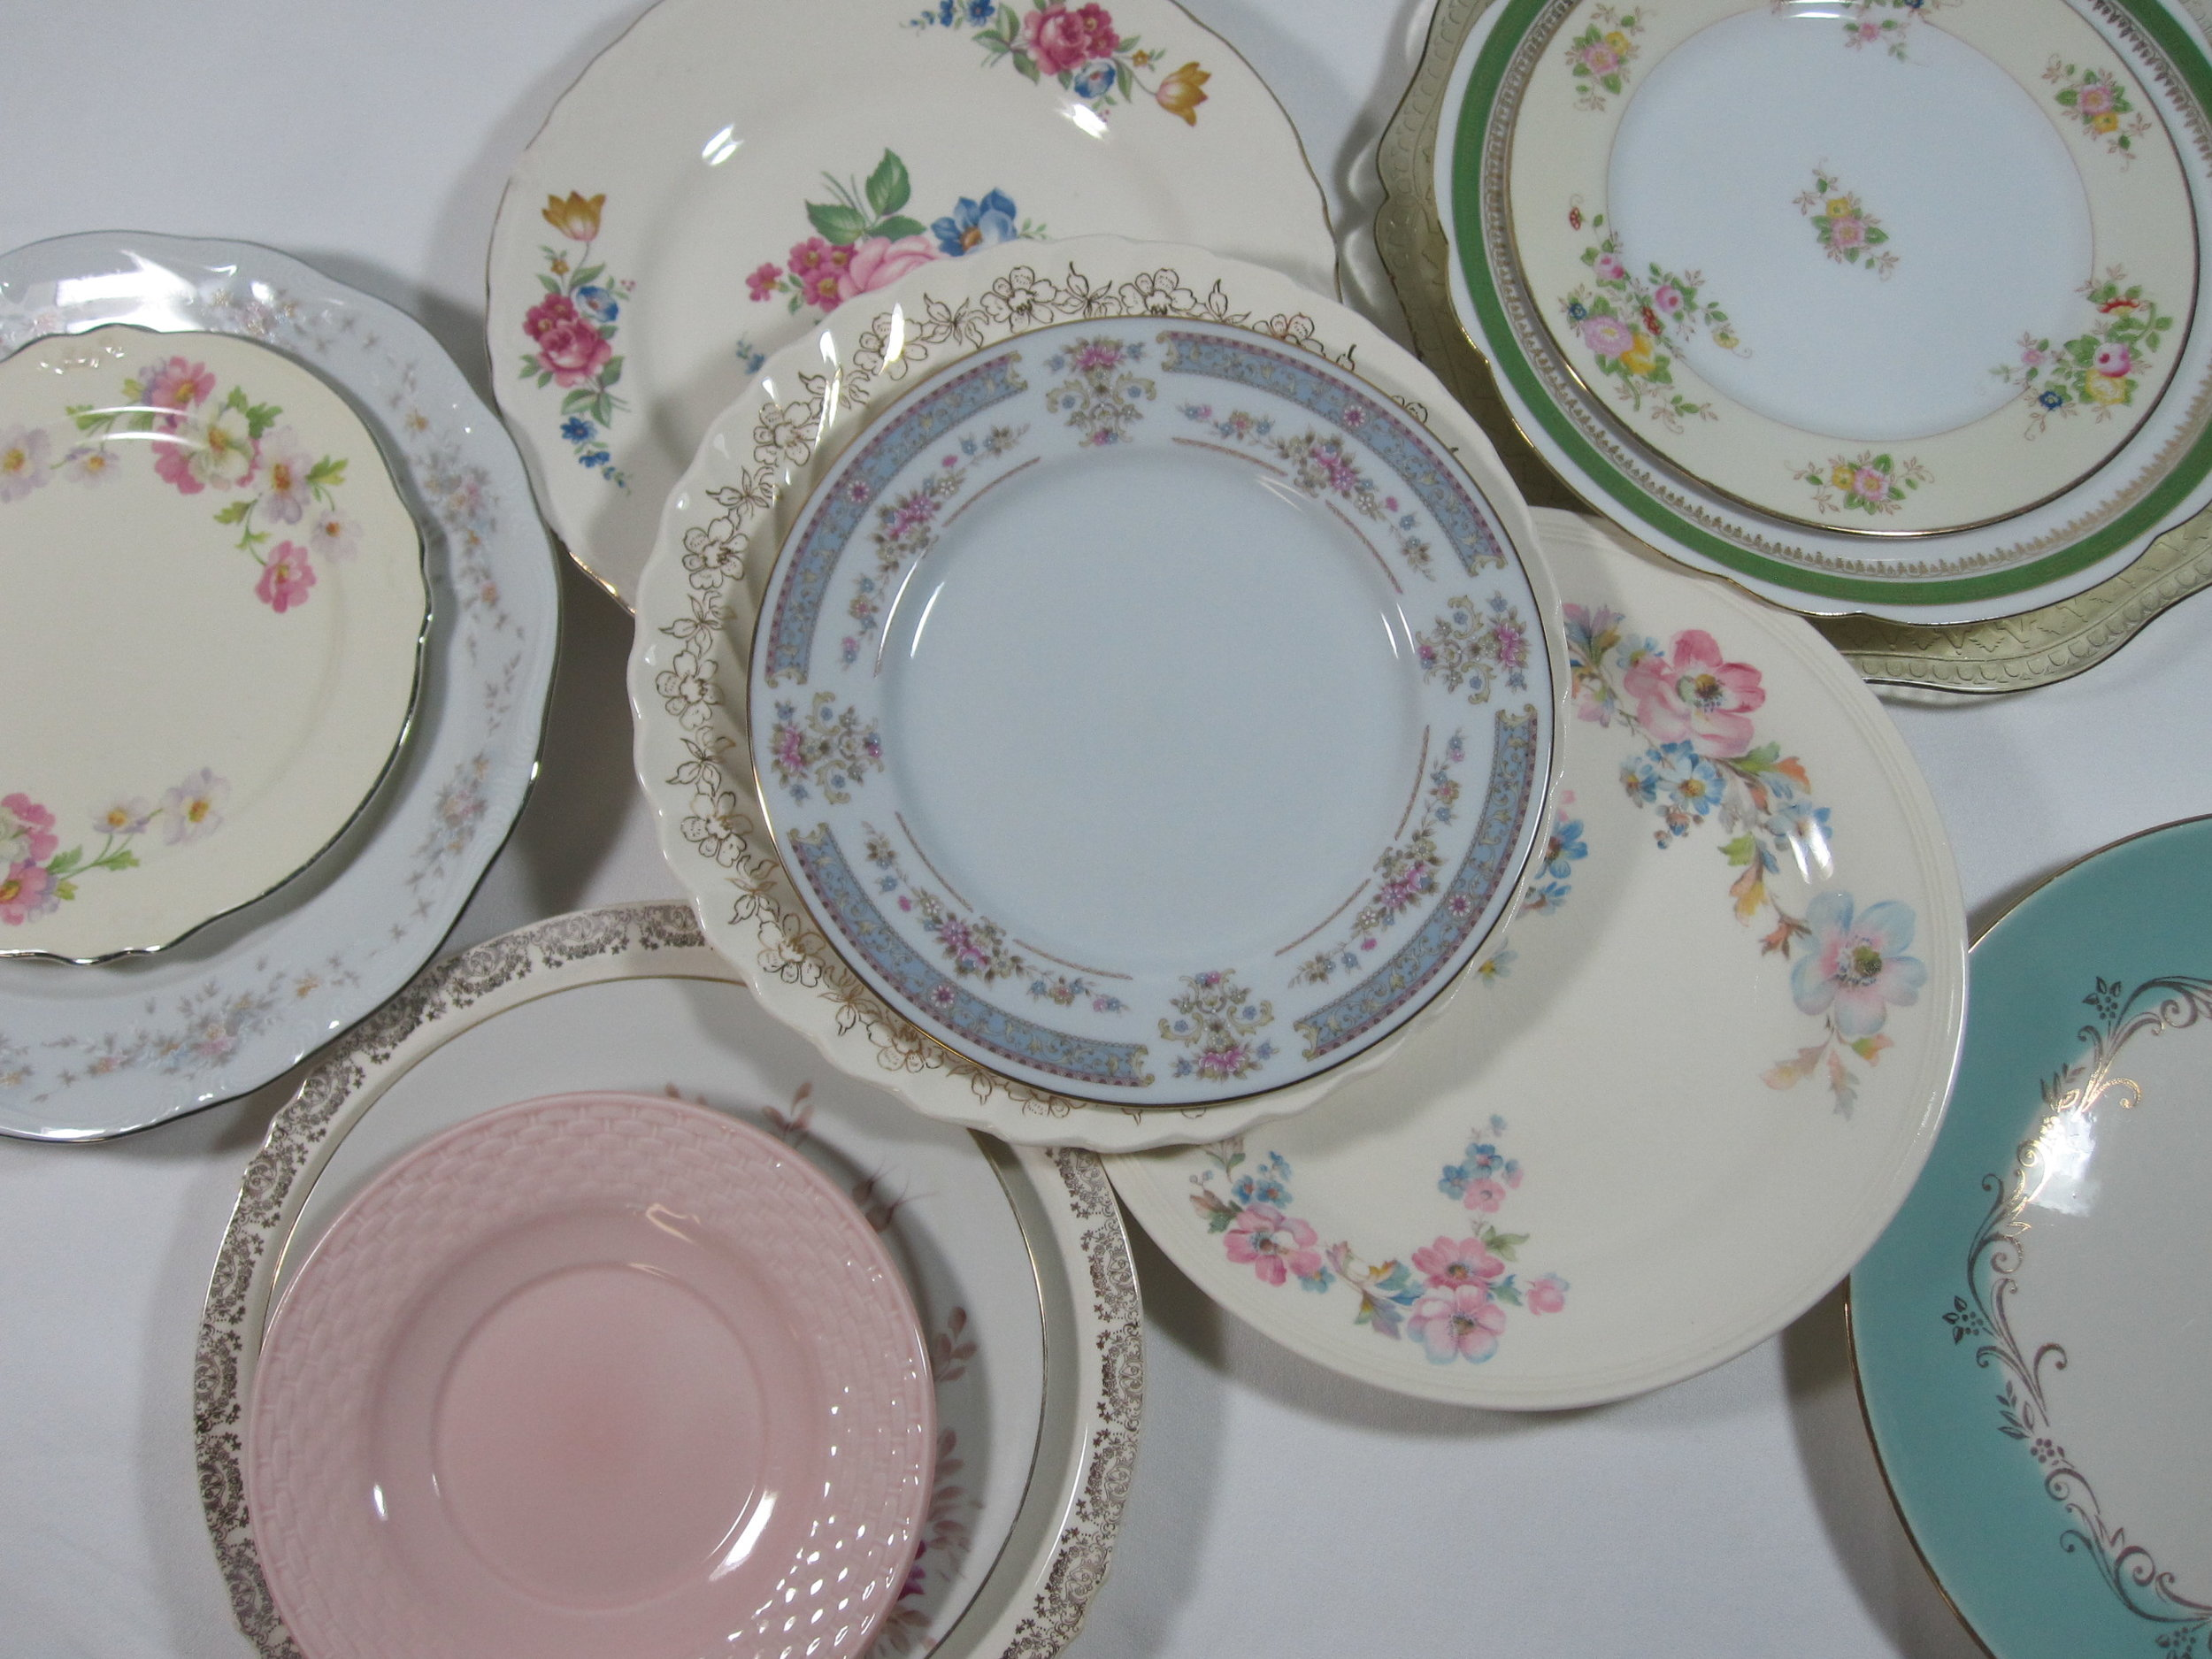 Dinner Plates - Description ~ Mix & match your table with vintage china plates! Coordinated pastel shadesQuantity ~ 445Price ~ .50